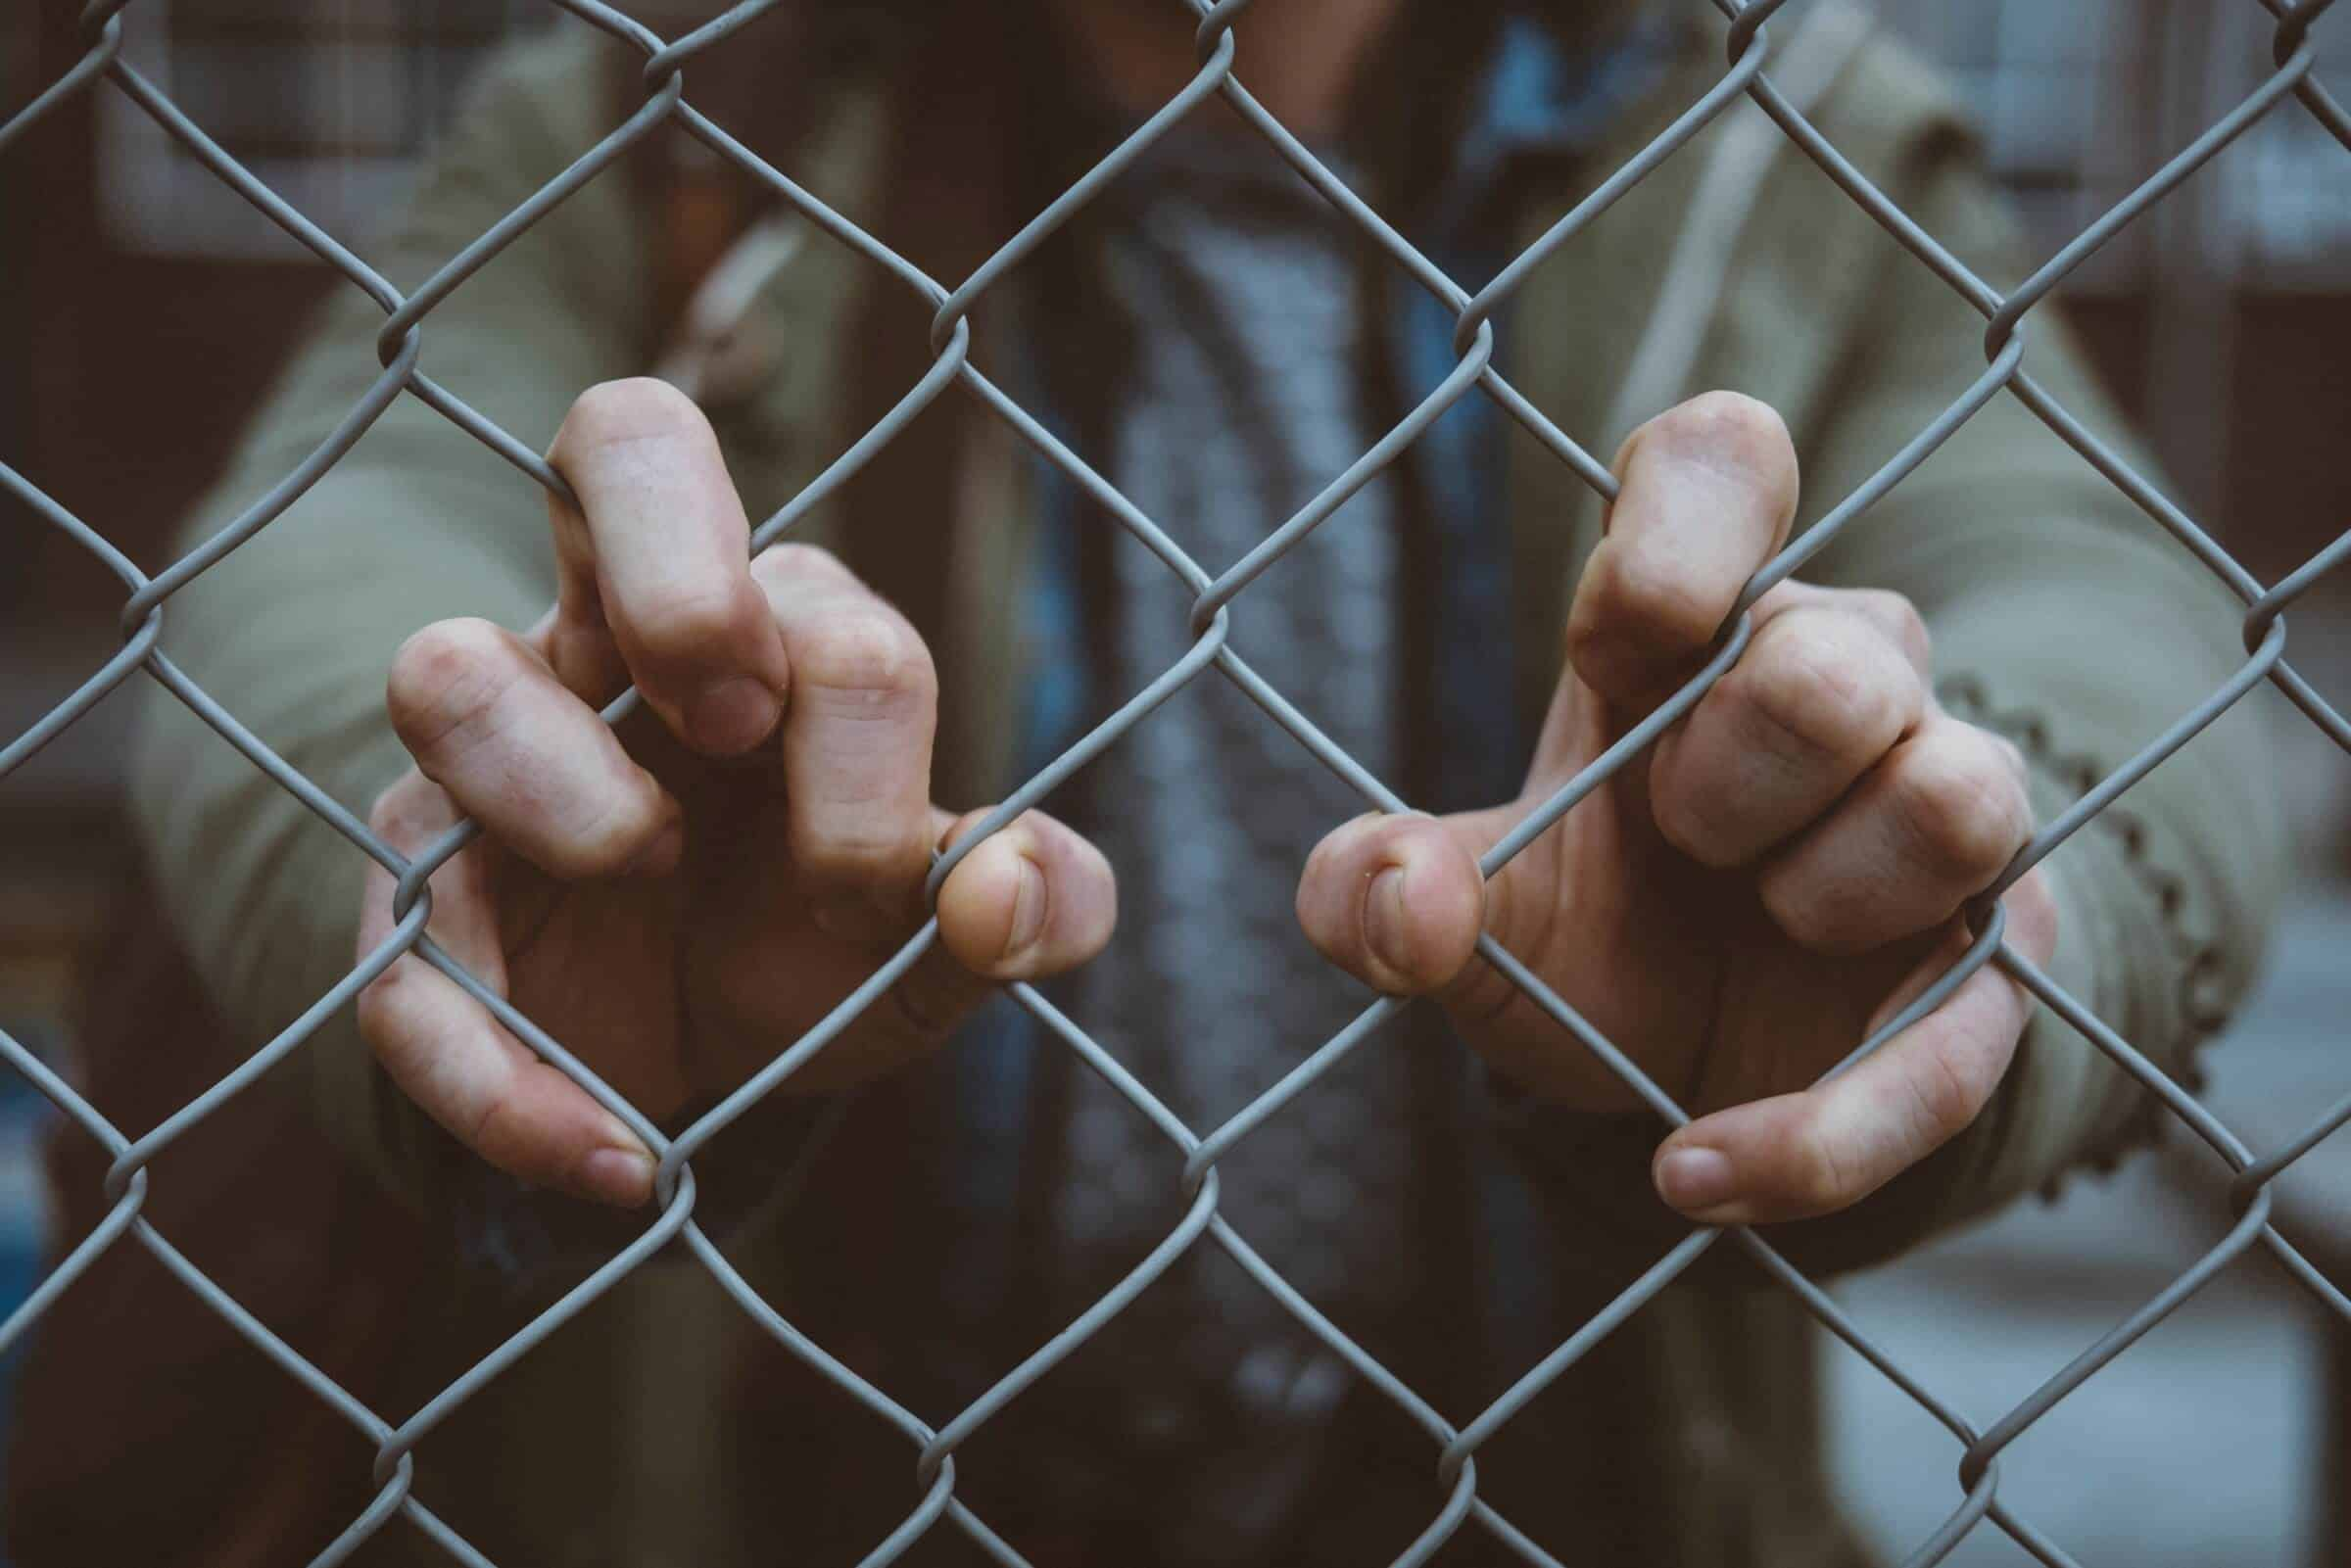 Image of man holding on to chain link fence as though he is barred from entry